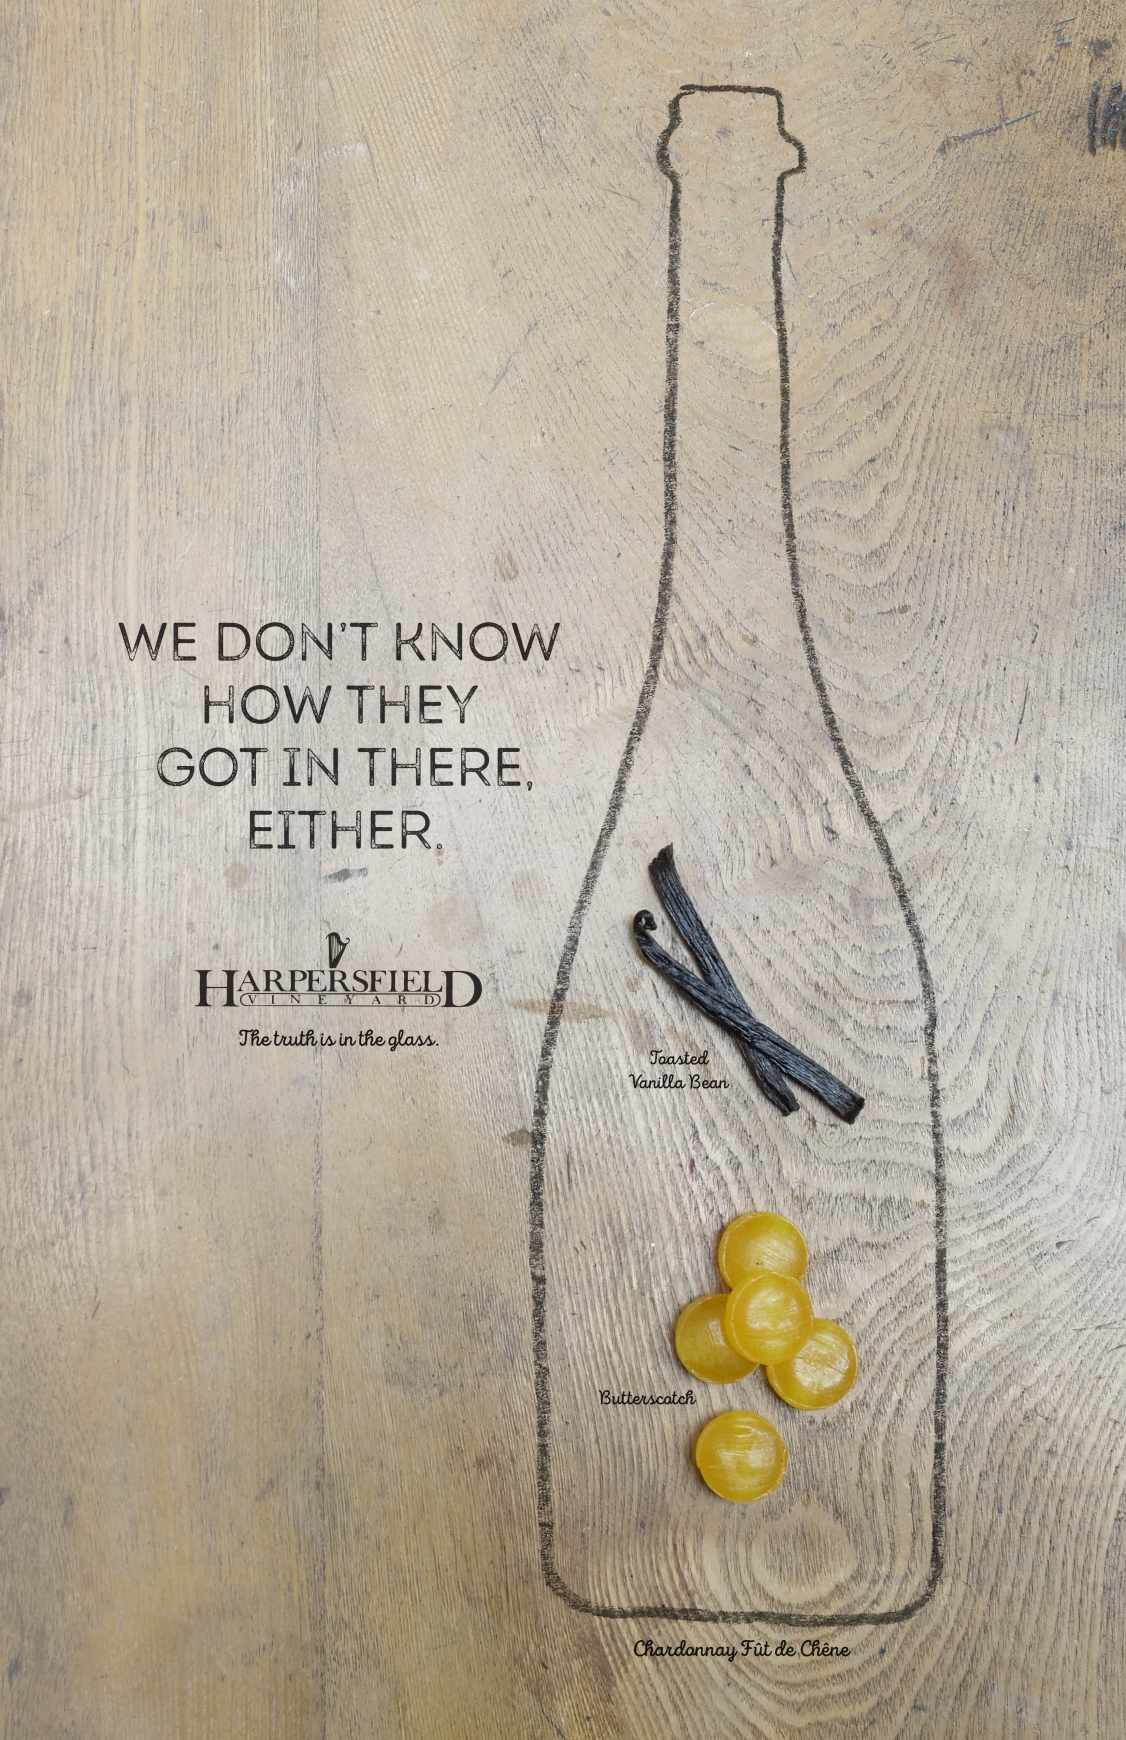 Harpersfield Vineyards Print Ad - Got In There